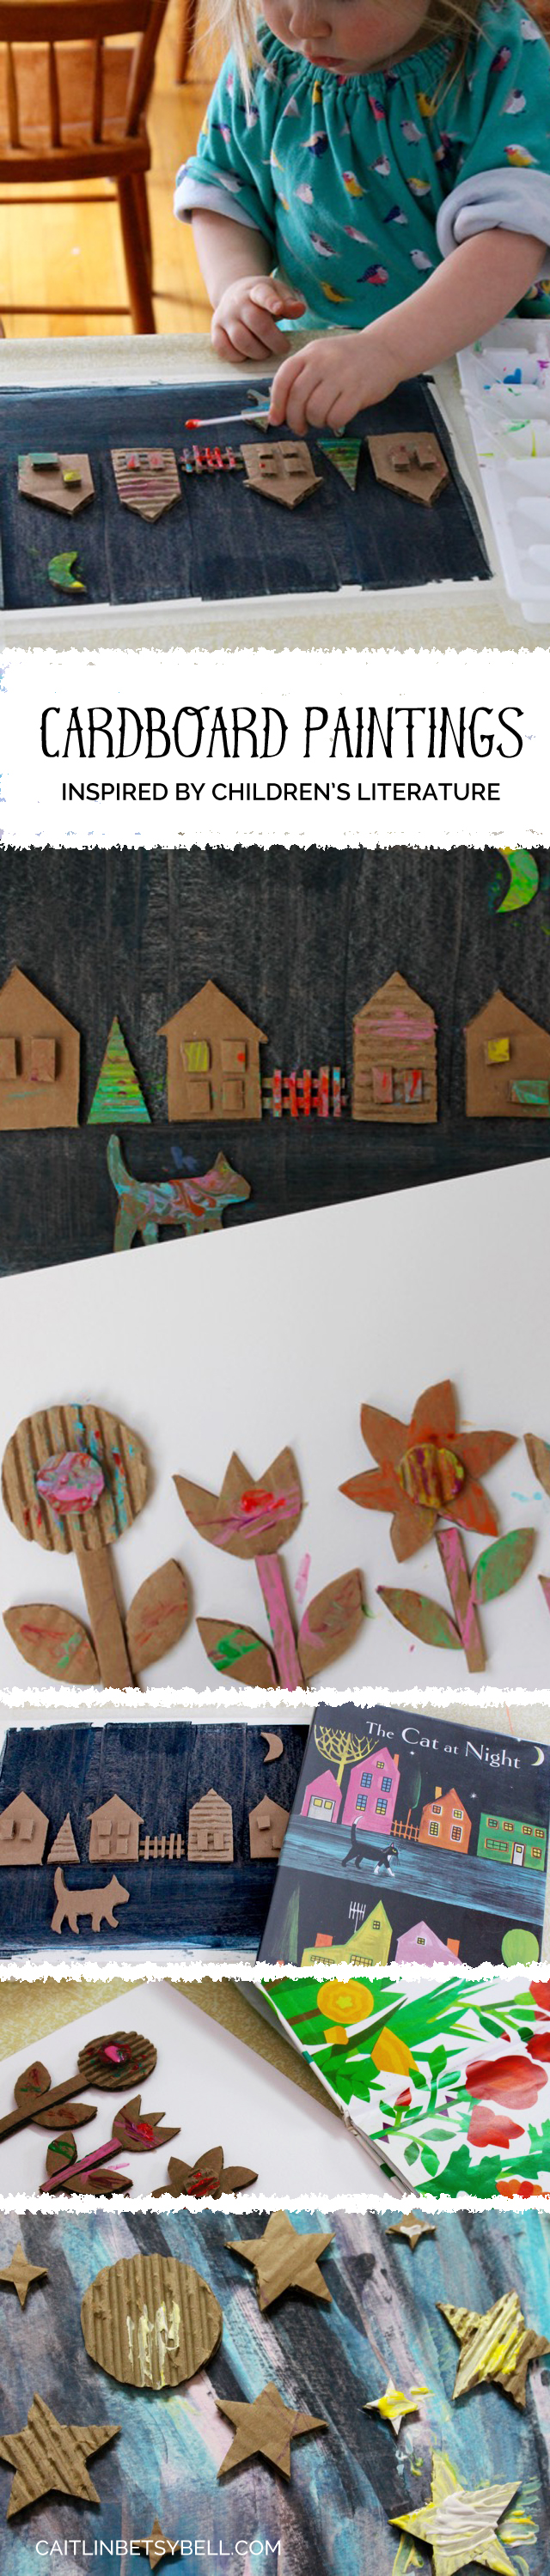 Cardboard Paintings | Caitlin Betsy Bell